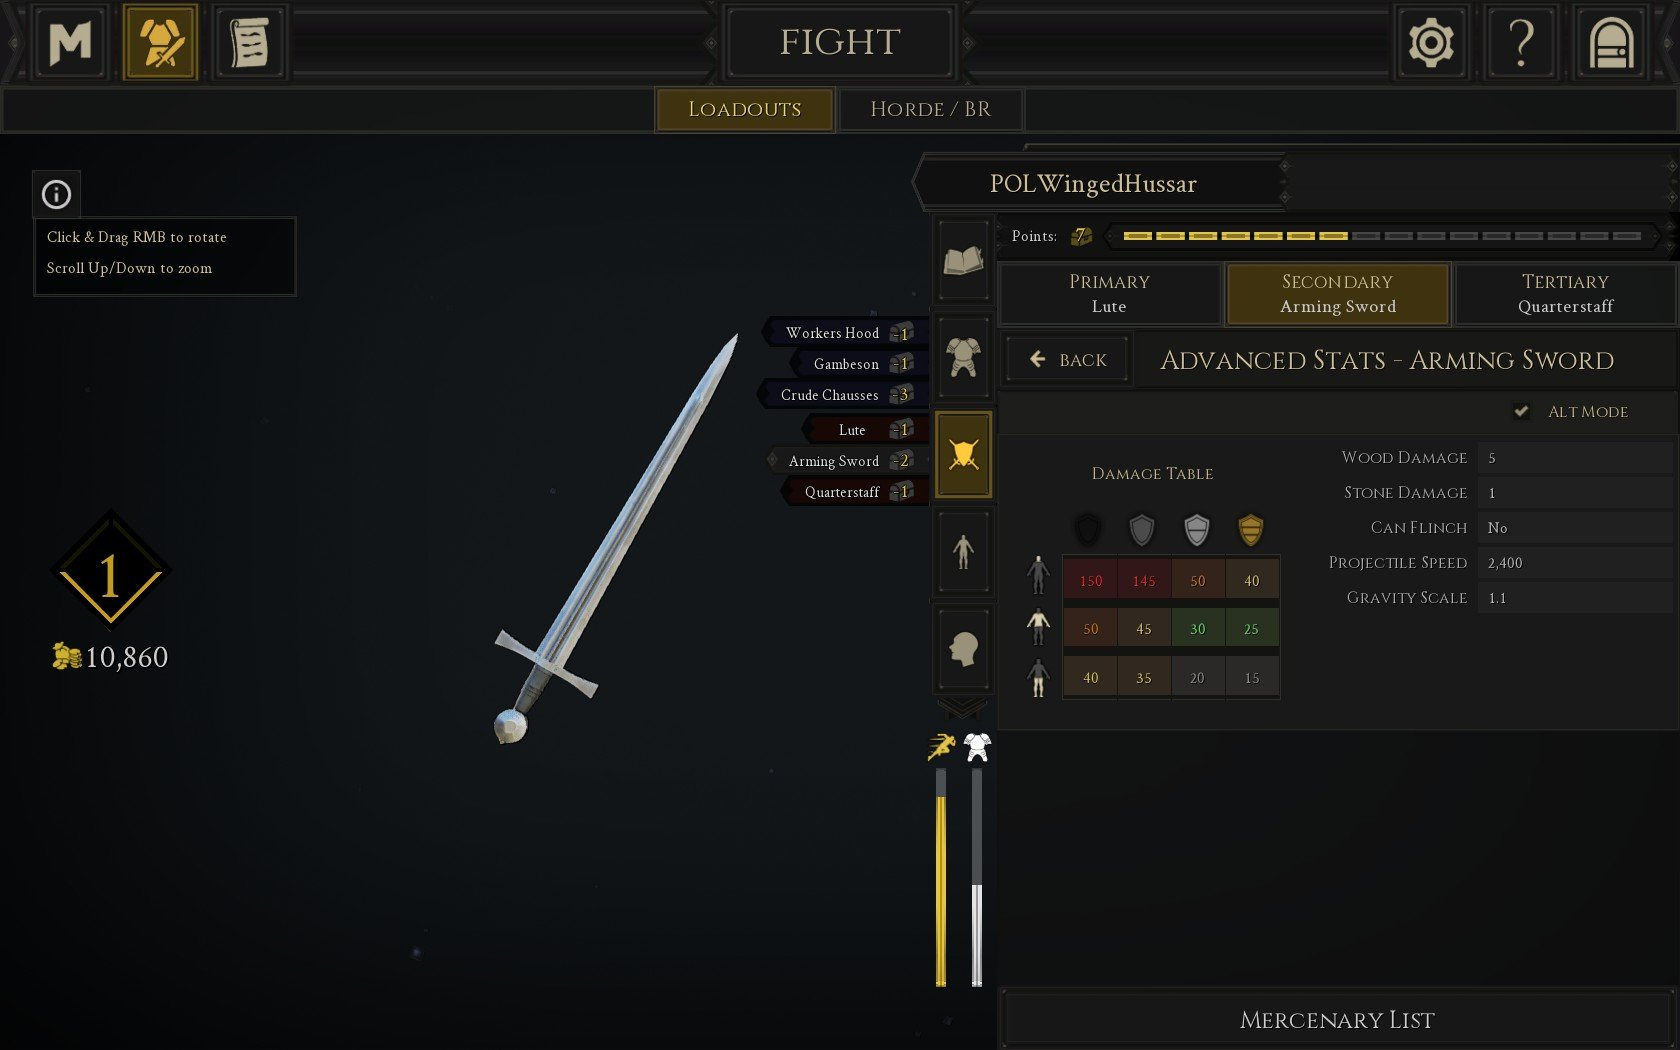 You can check to see if a weapon is throwable by viewing its Advanced Stats and checking Alt Mode in the armory section of Mordhau.